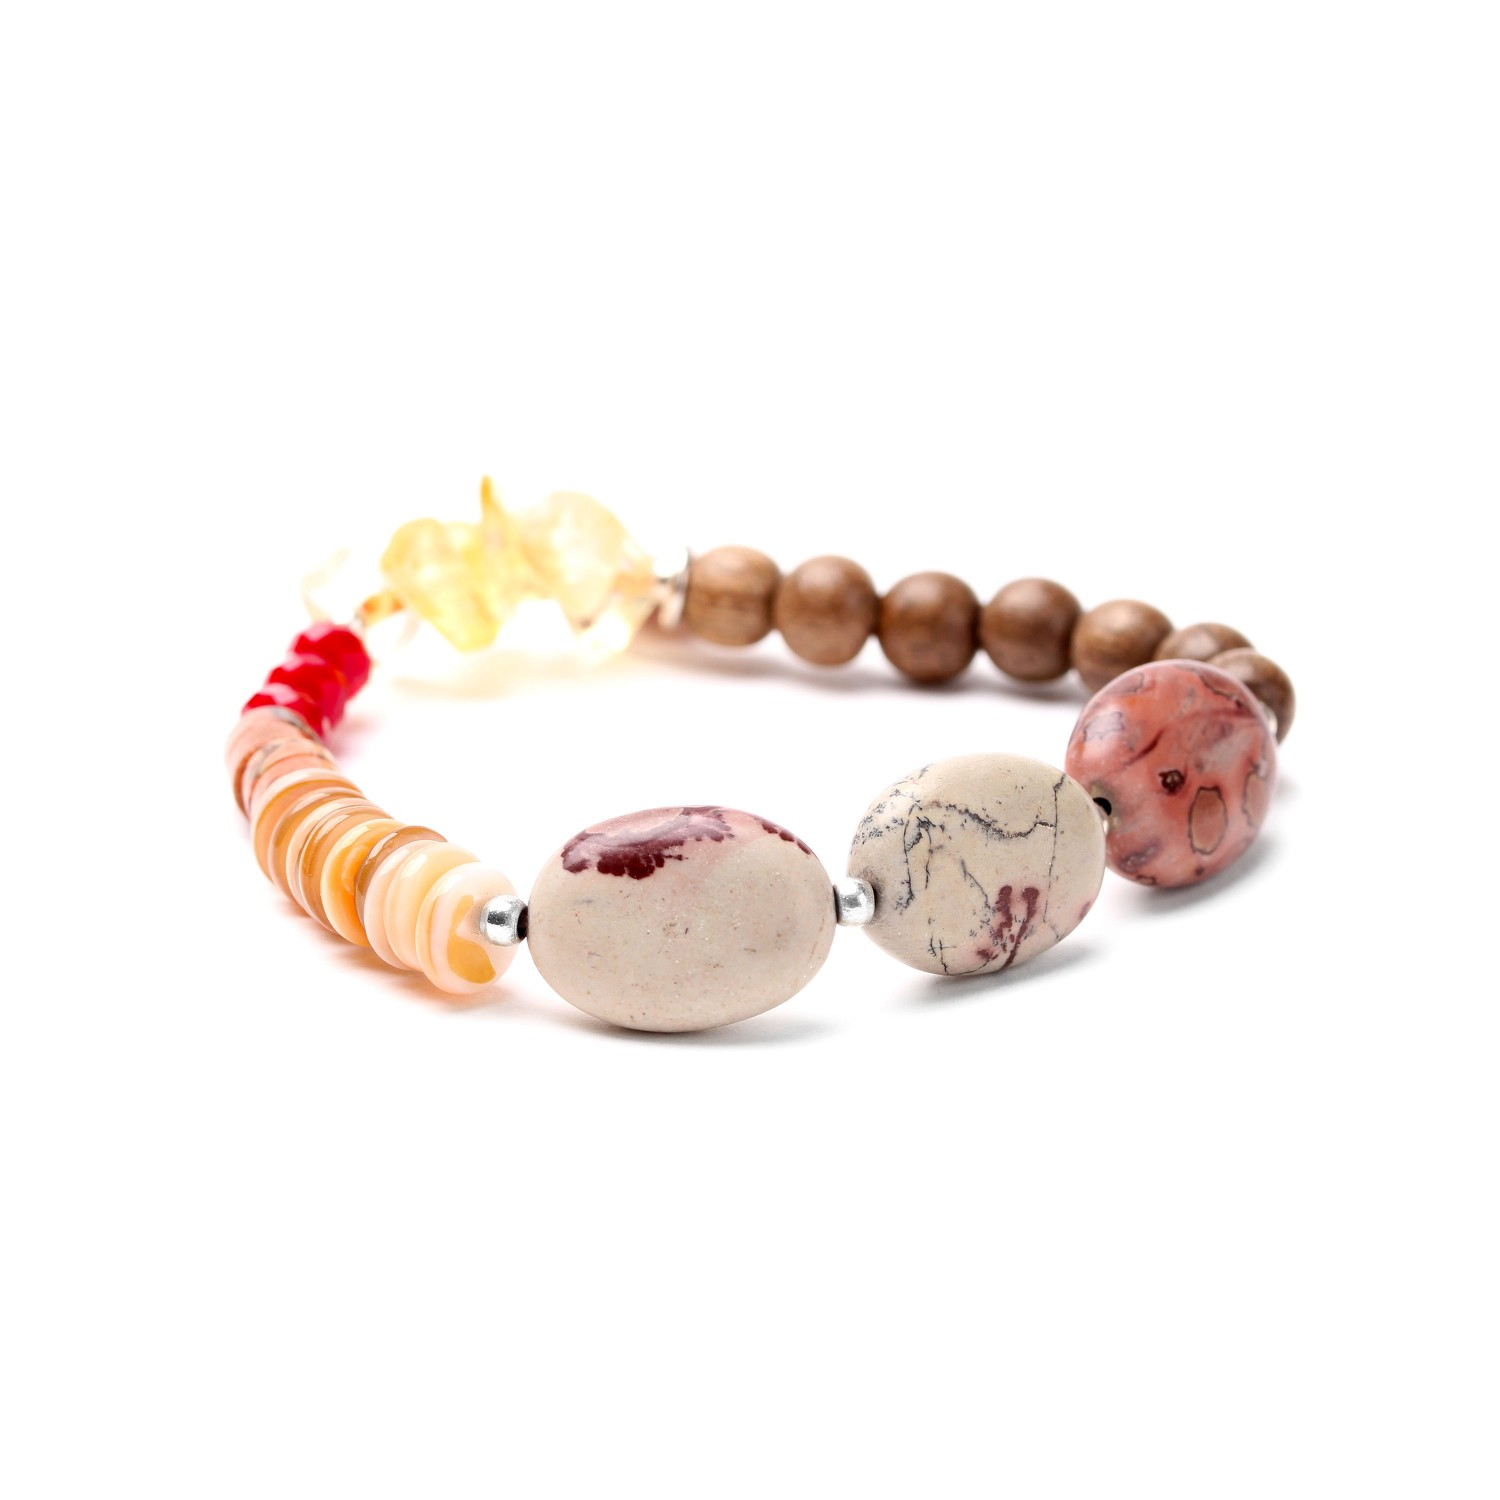 DESERTIGO oval beads stretch bracelet